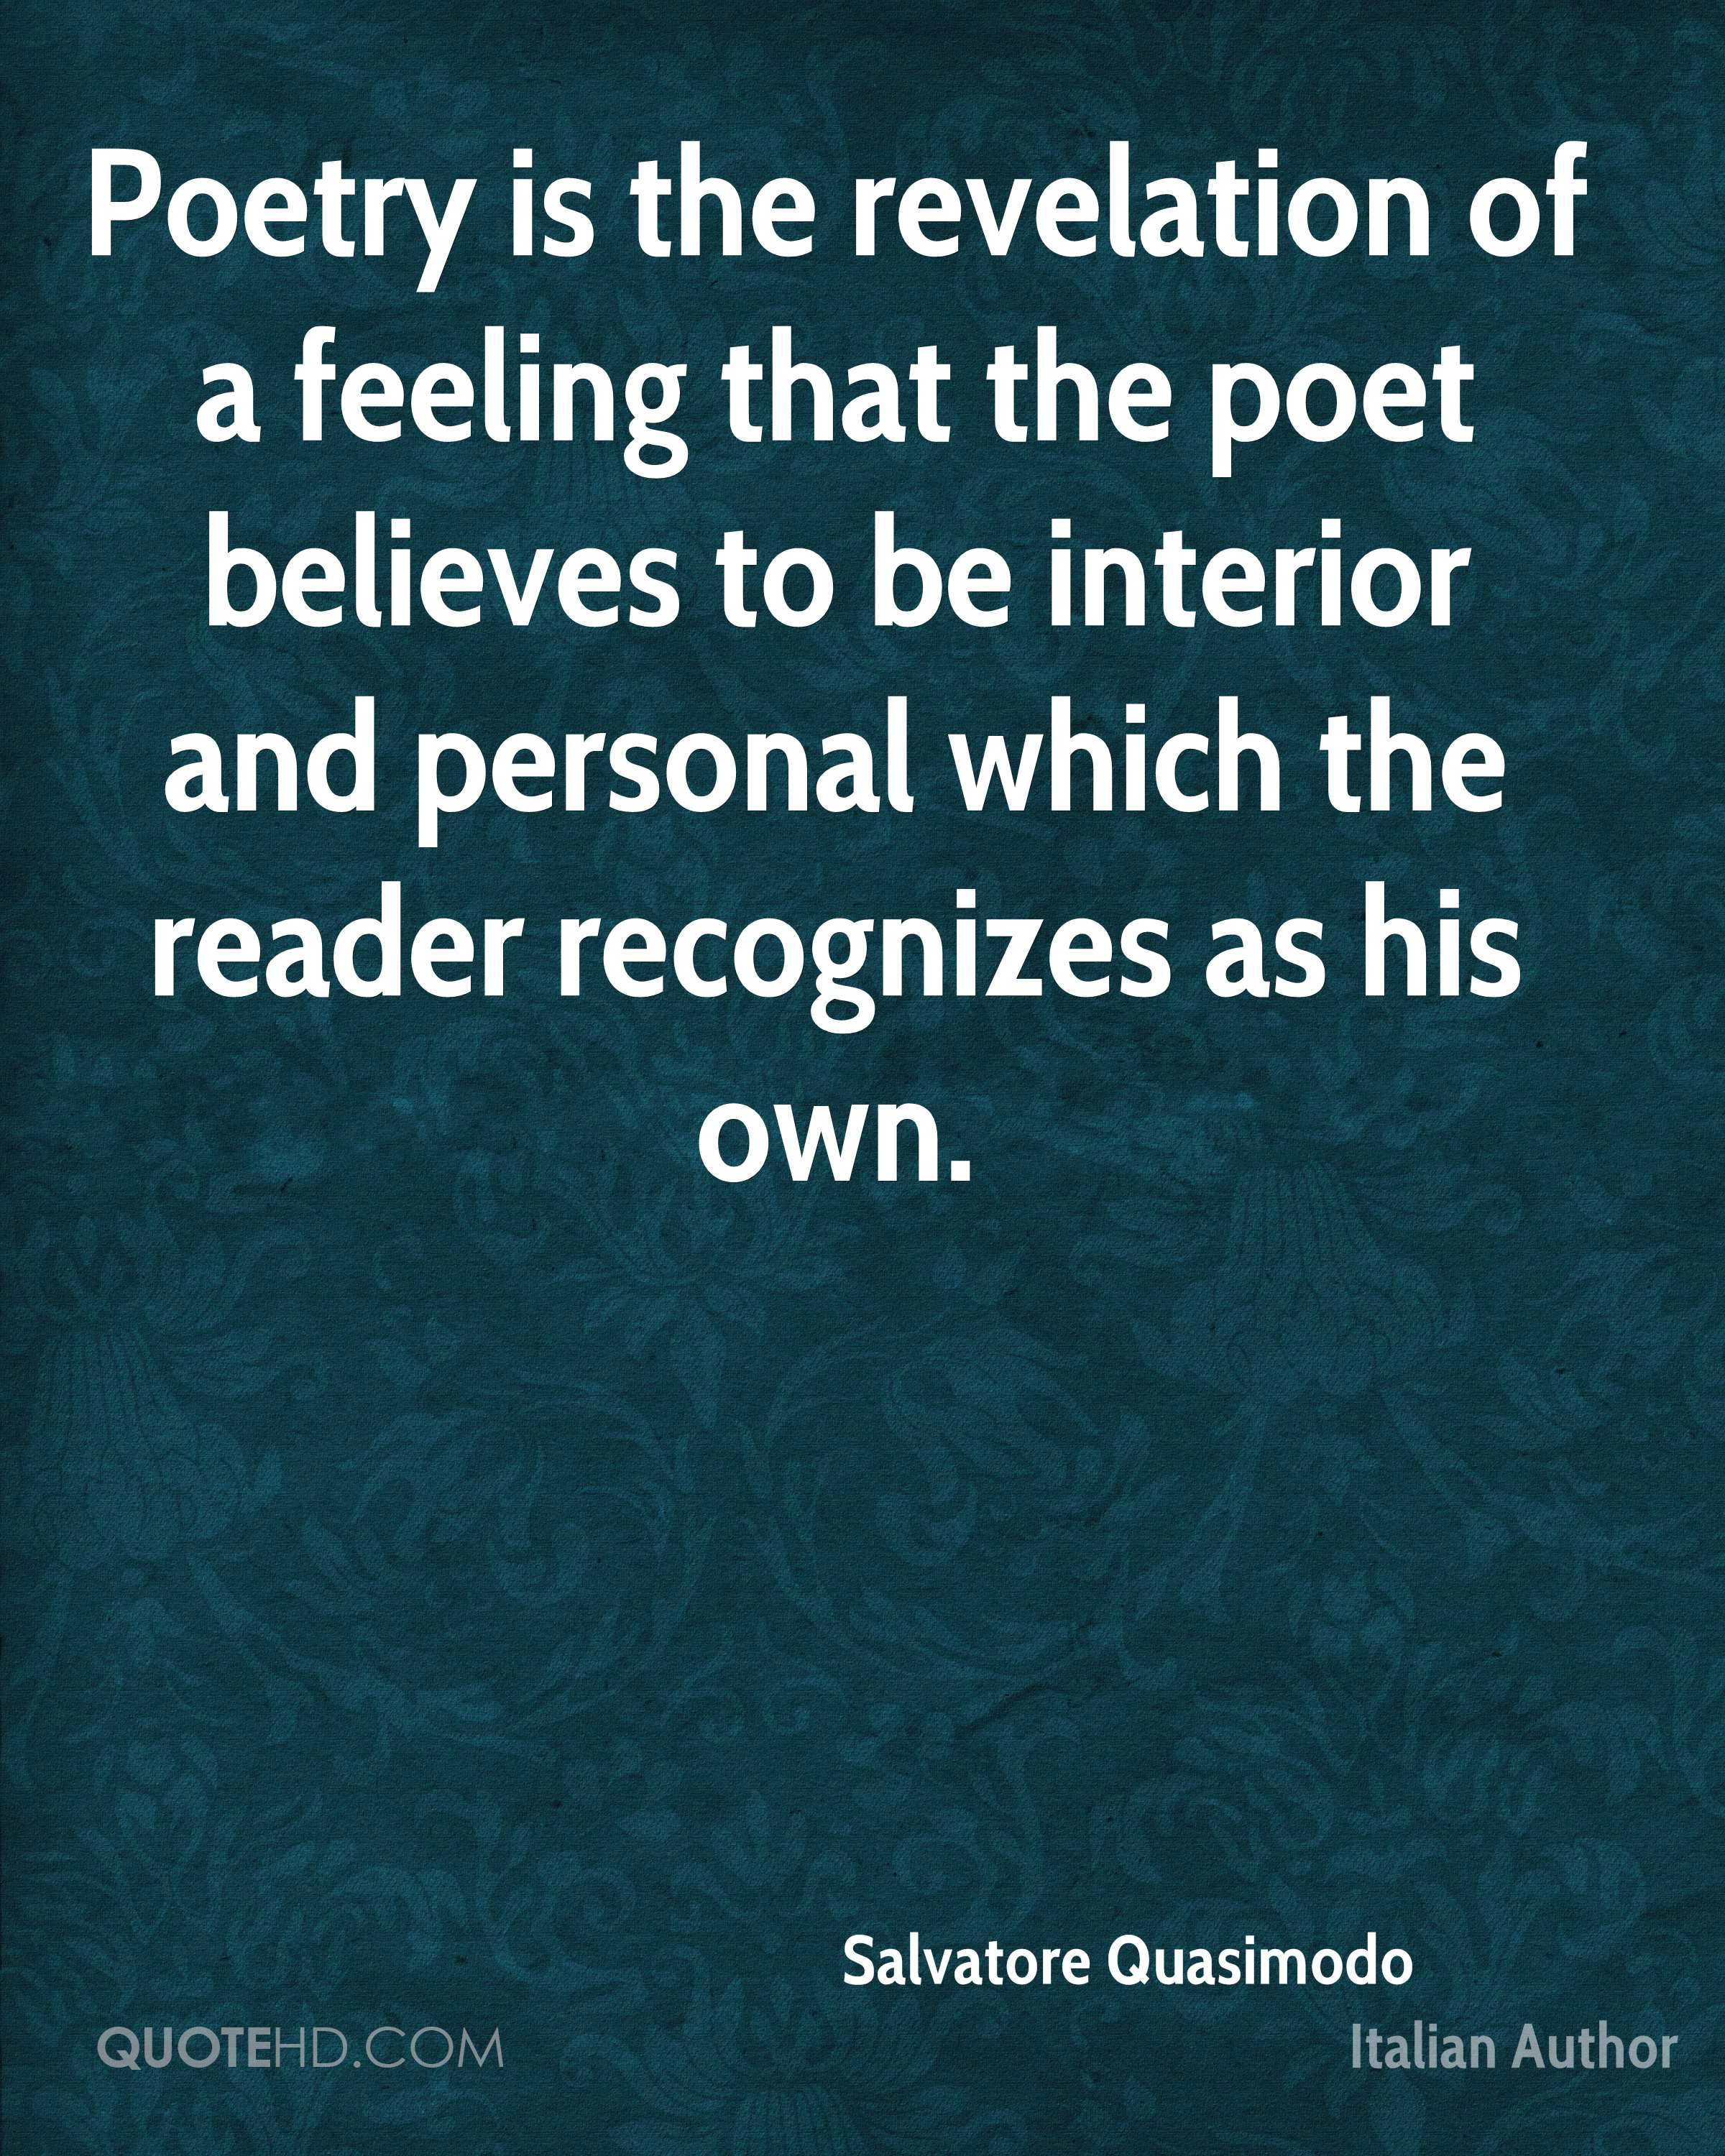 Poetry is the revelation of a feeling that the poet believes to be interior and personal which the reader recognizes as his own.